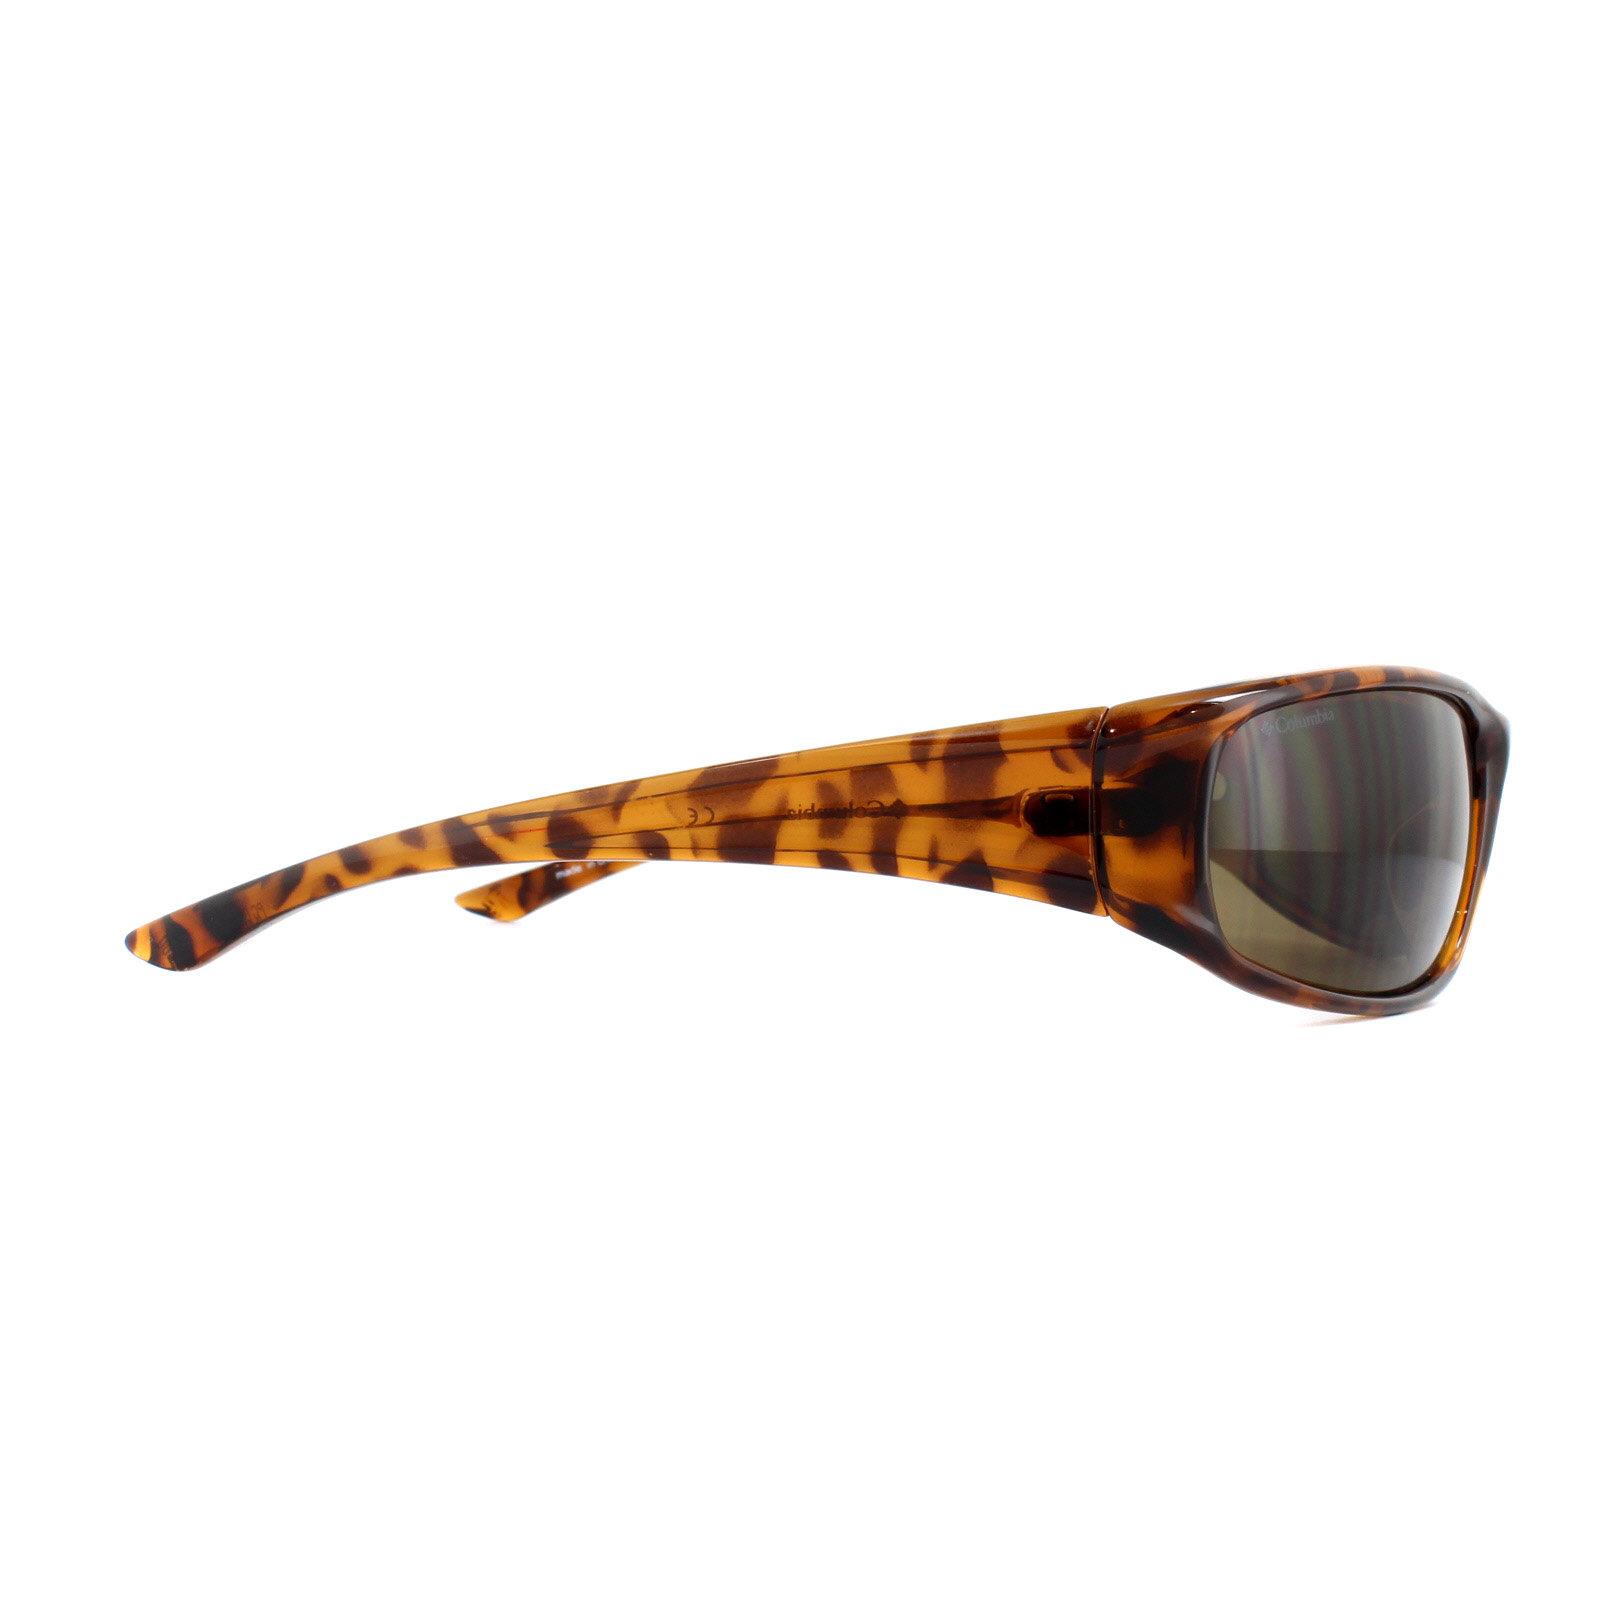 ebfb455afe98 Columbia Sunglasses Borrego C620 Tortoise Brown Brown 882851147710 ...